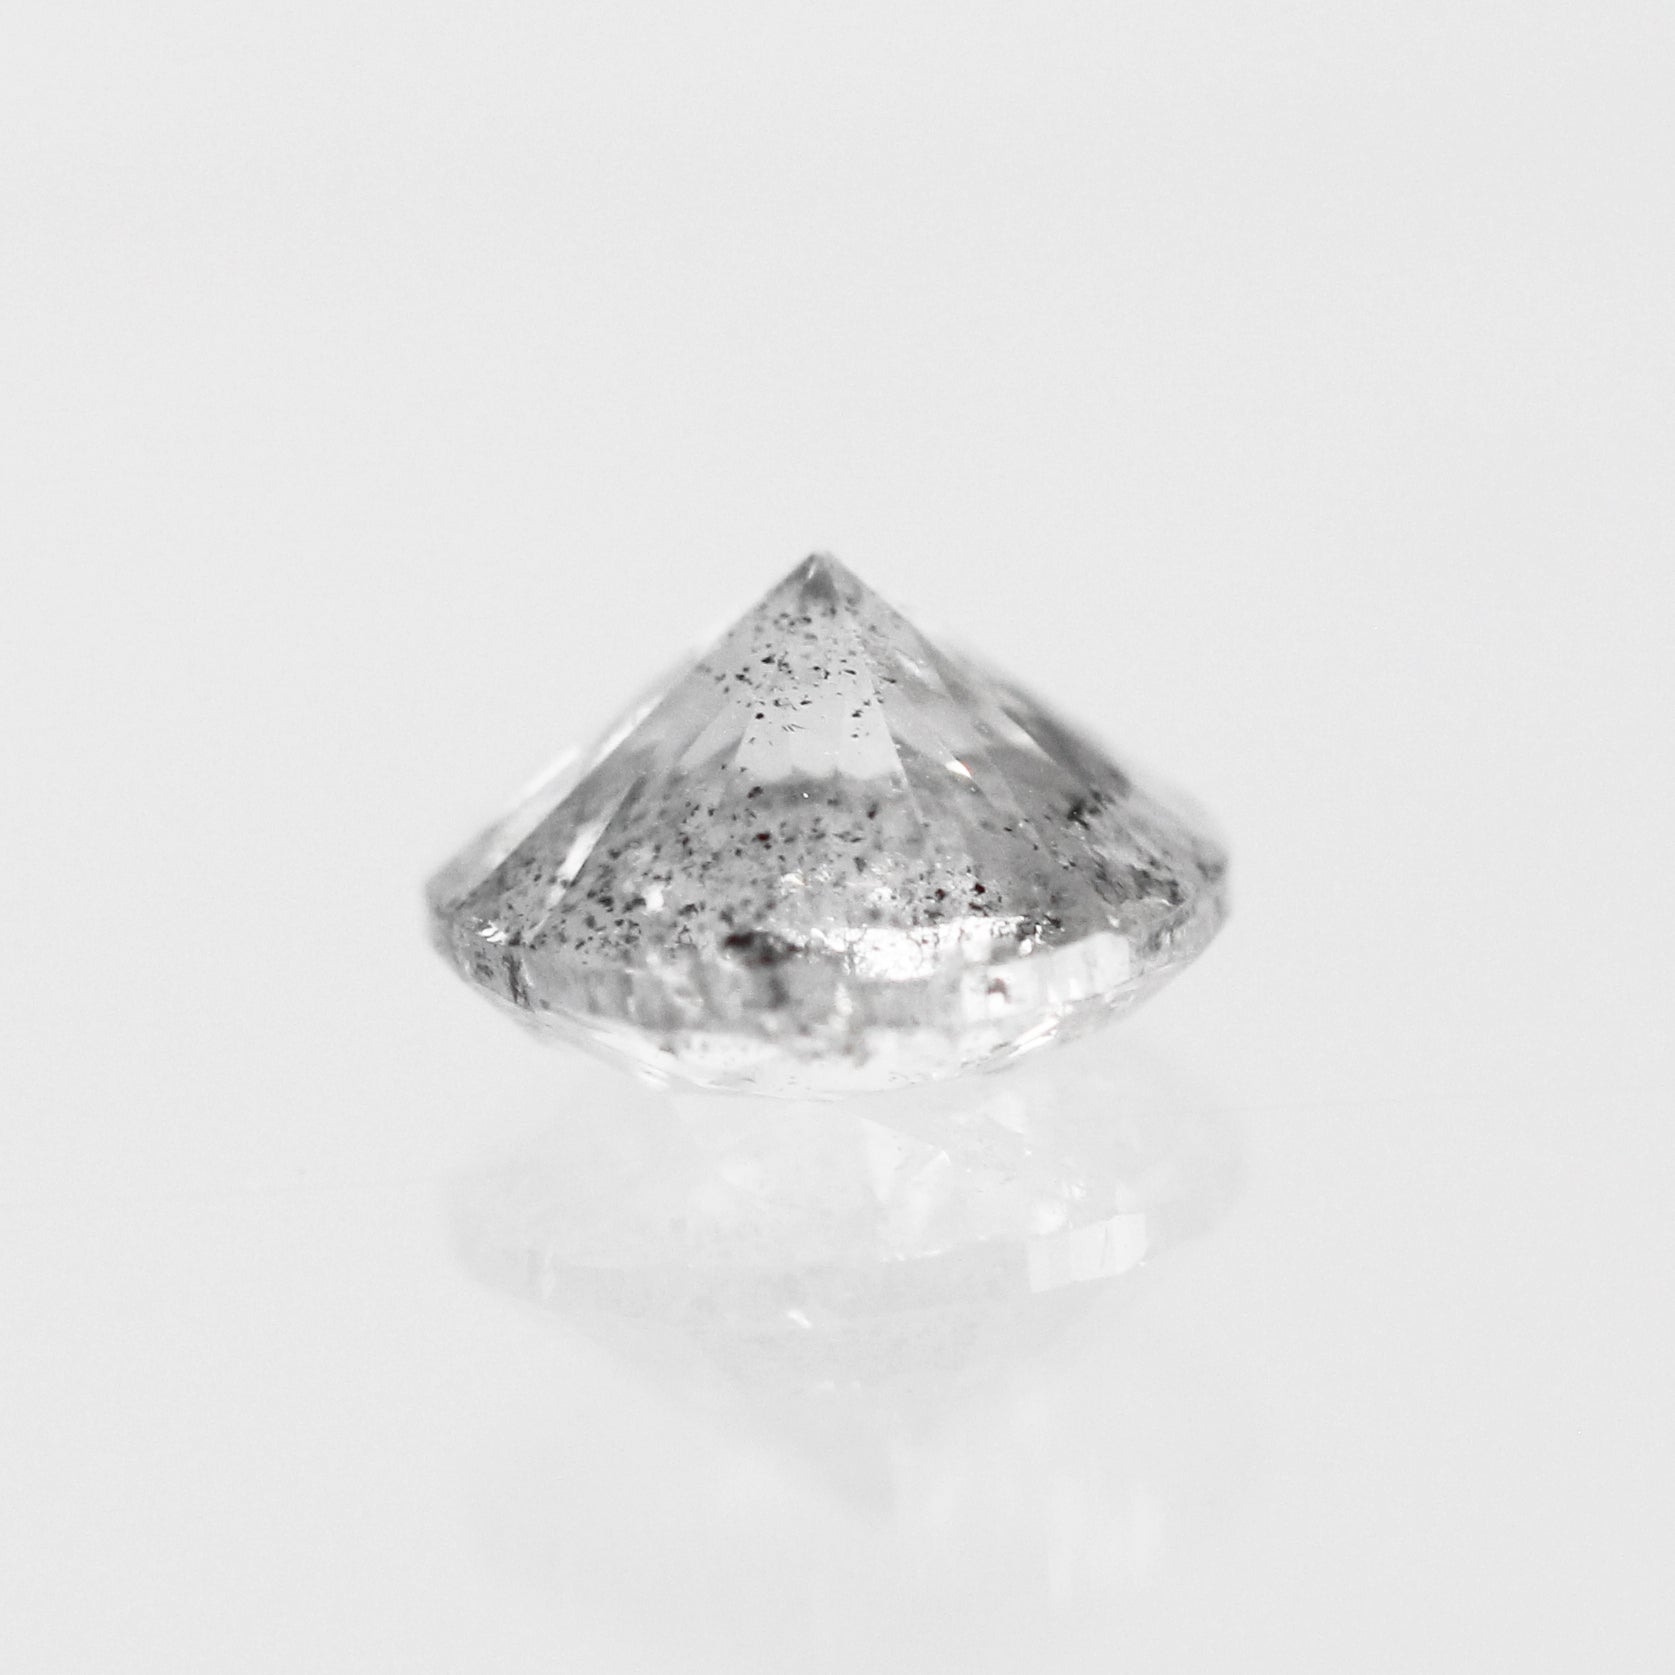 .92 Carat Round Celestial Diamond for Custom Work-Inventory Code RBWC92 - Celestial Diamonds ® by Midwinter Co.